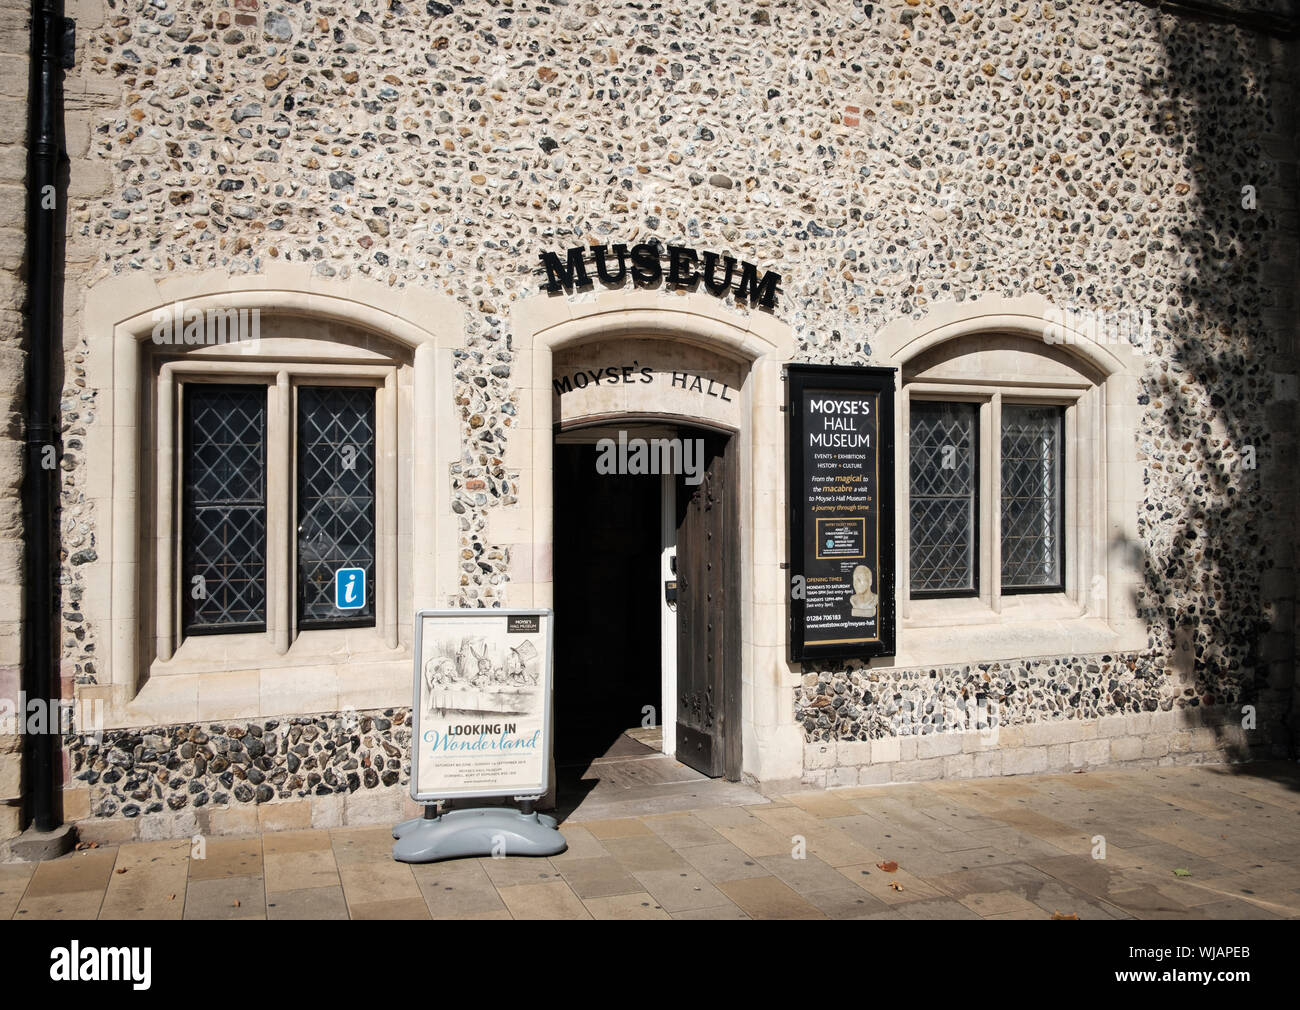 Moyse's Hall Museum housed in a medieval building in the Marketplace, Bury St Edmunds, Suffolk Stock Photo